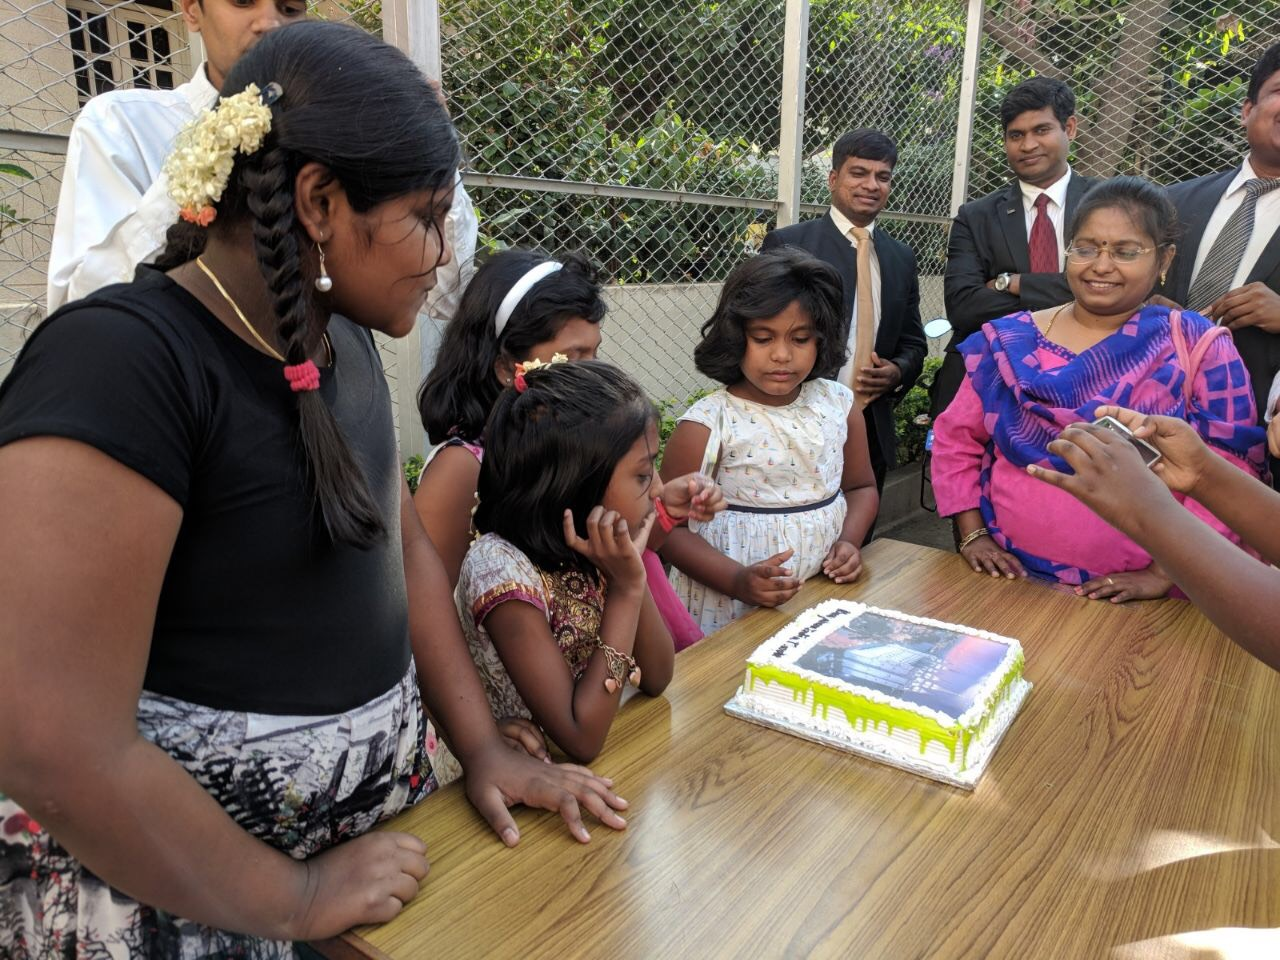 Members in Bengaluru, India, wait to cut a cake with a picture of the Salt Lake Temple to celebrate the announcement of a temple for India following general conference.